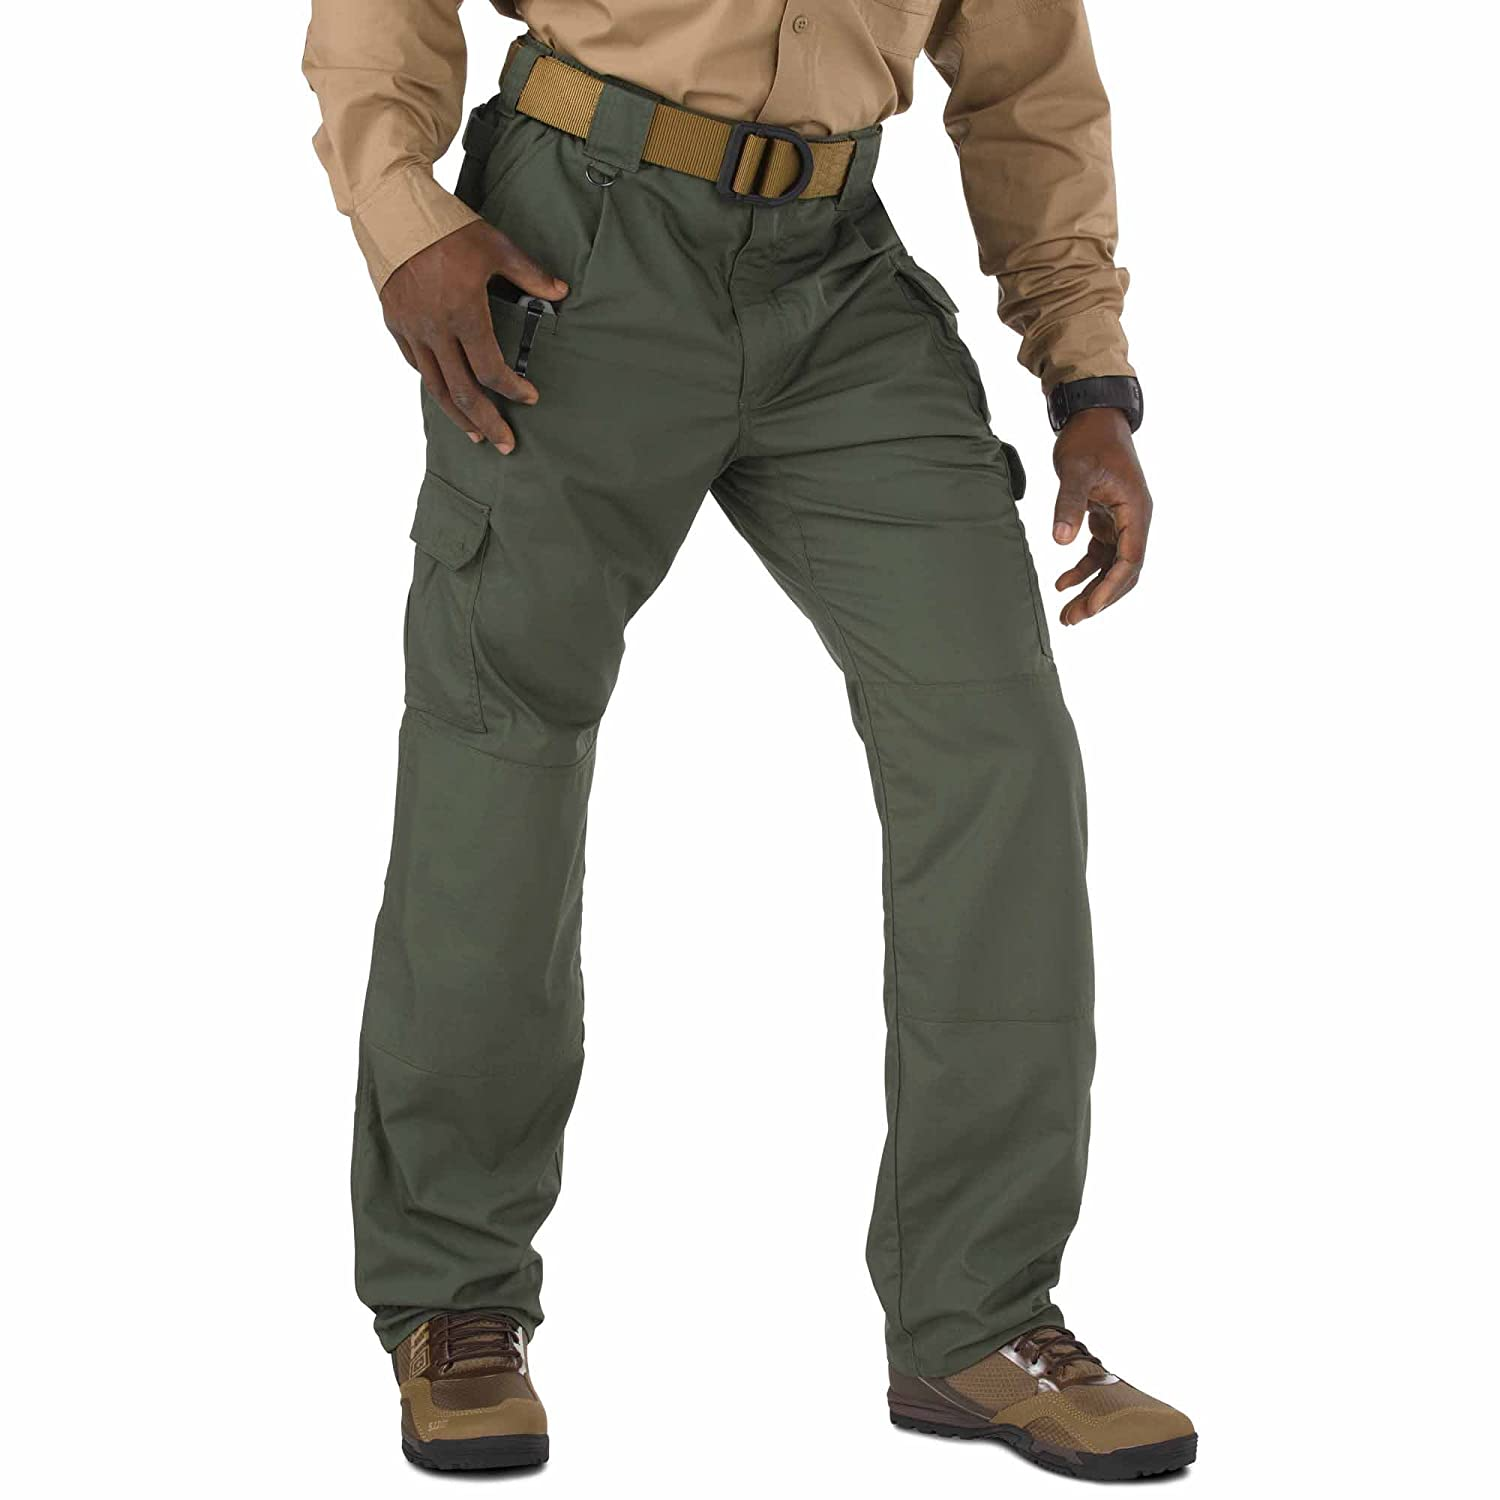 5.11 Men's Taclite Pro Tactical Pants, Style 74273 5.11 Tactical Apparel 74273-P